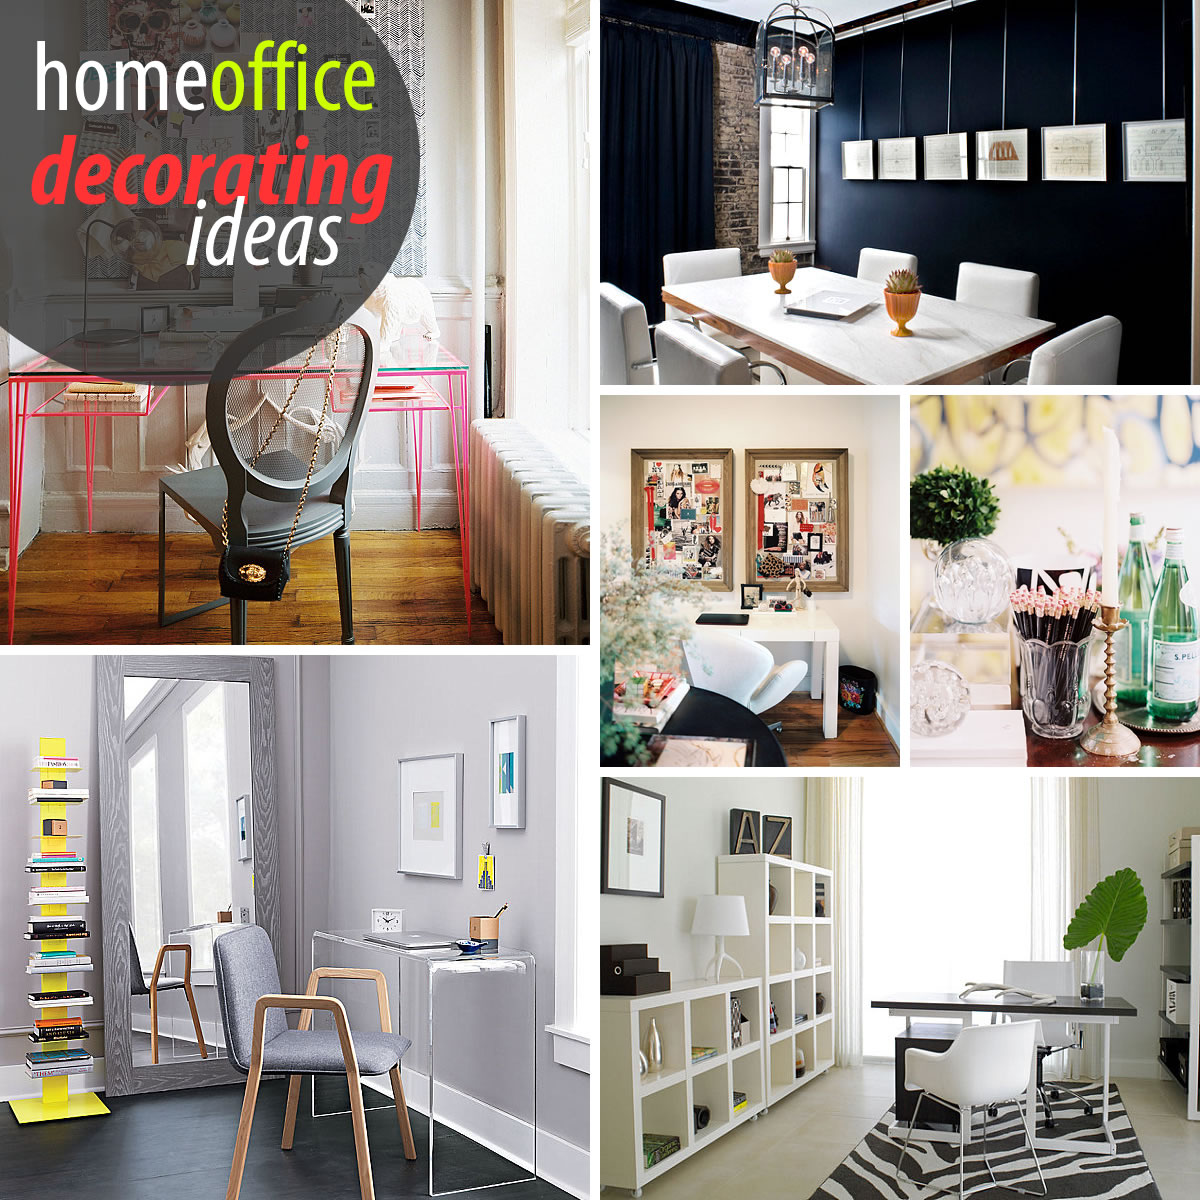 Creative Home Decorating Ideas On A Budget